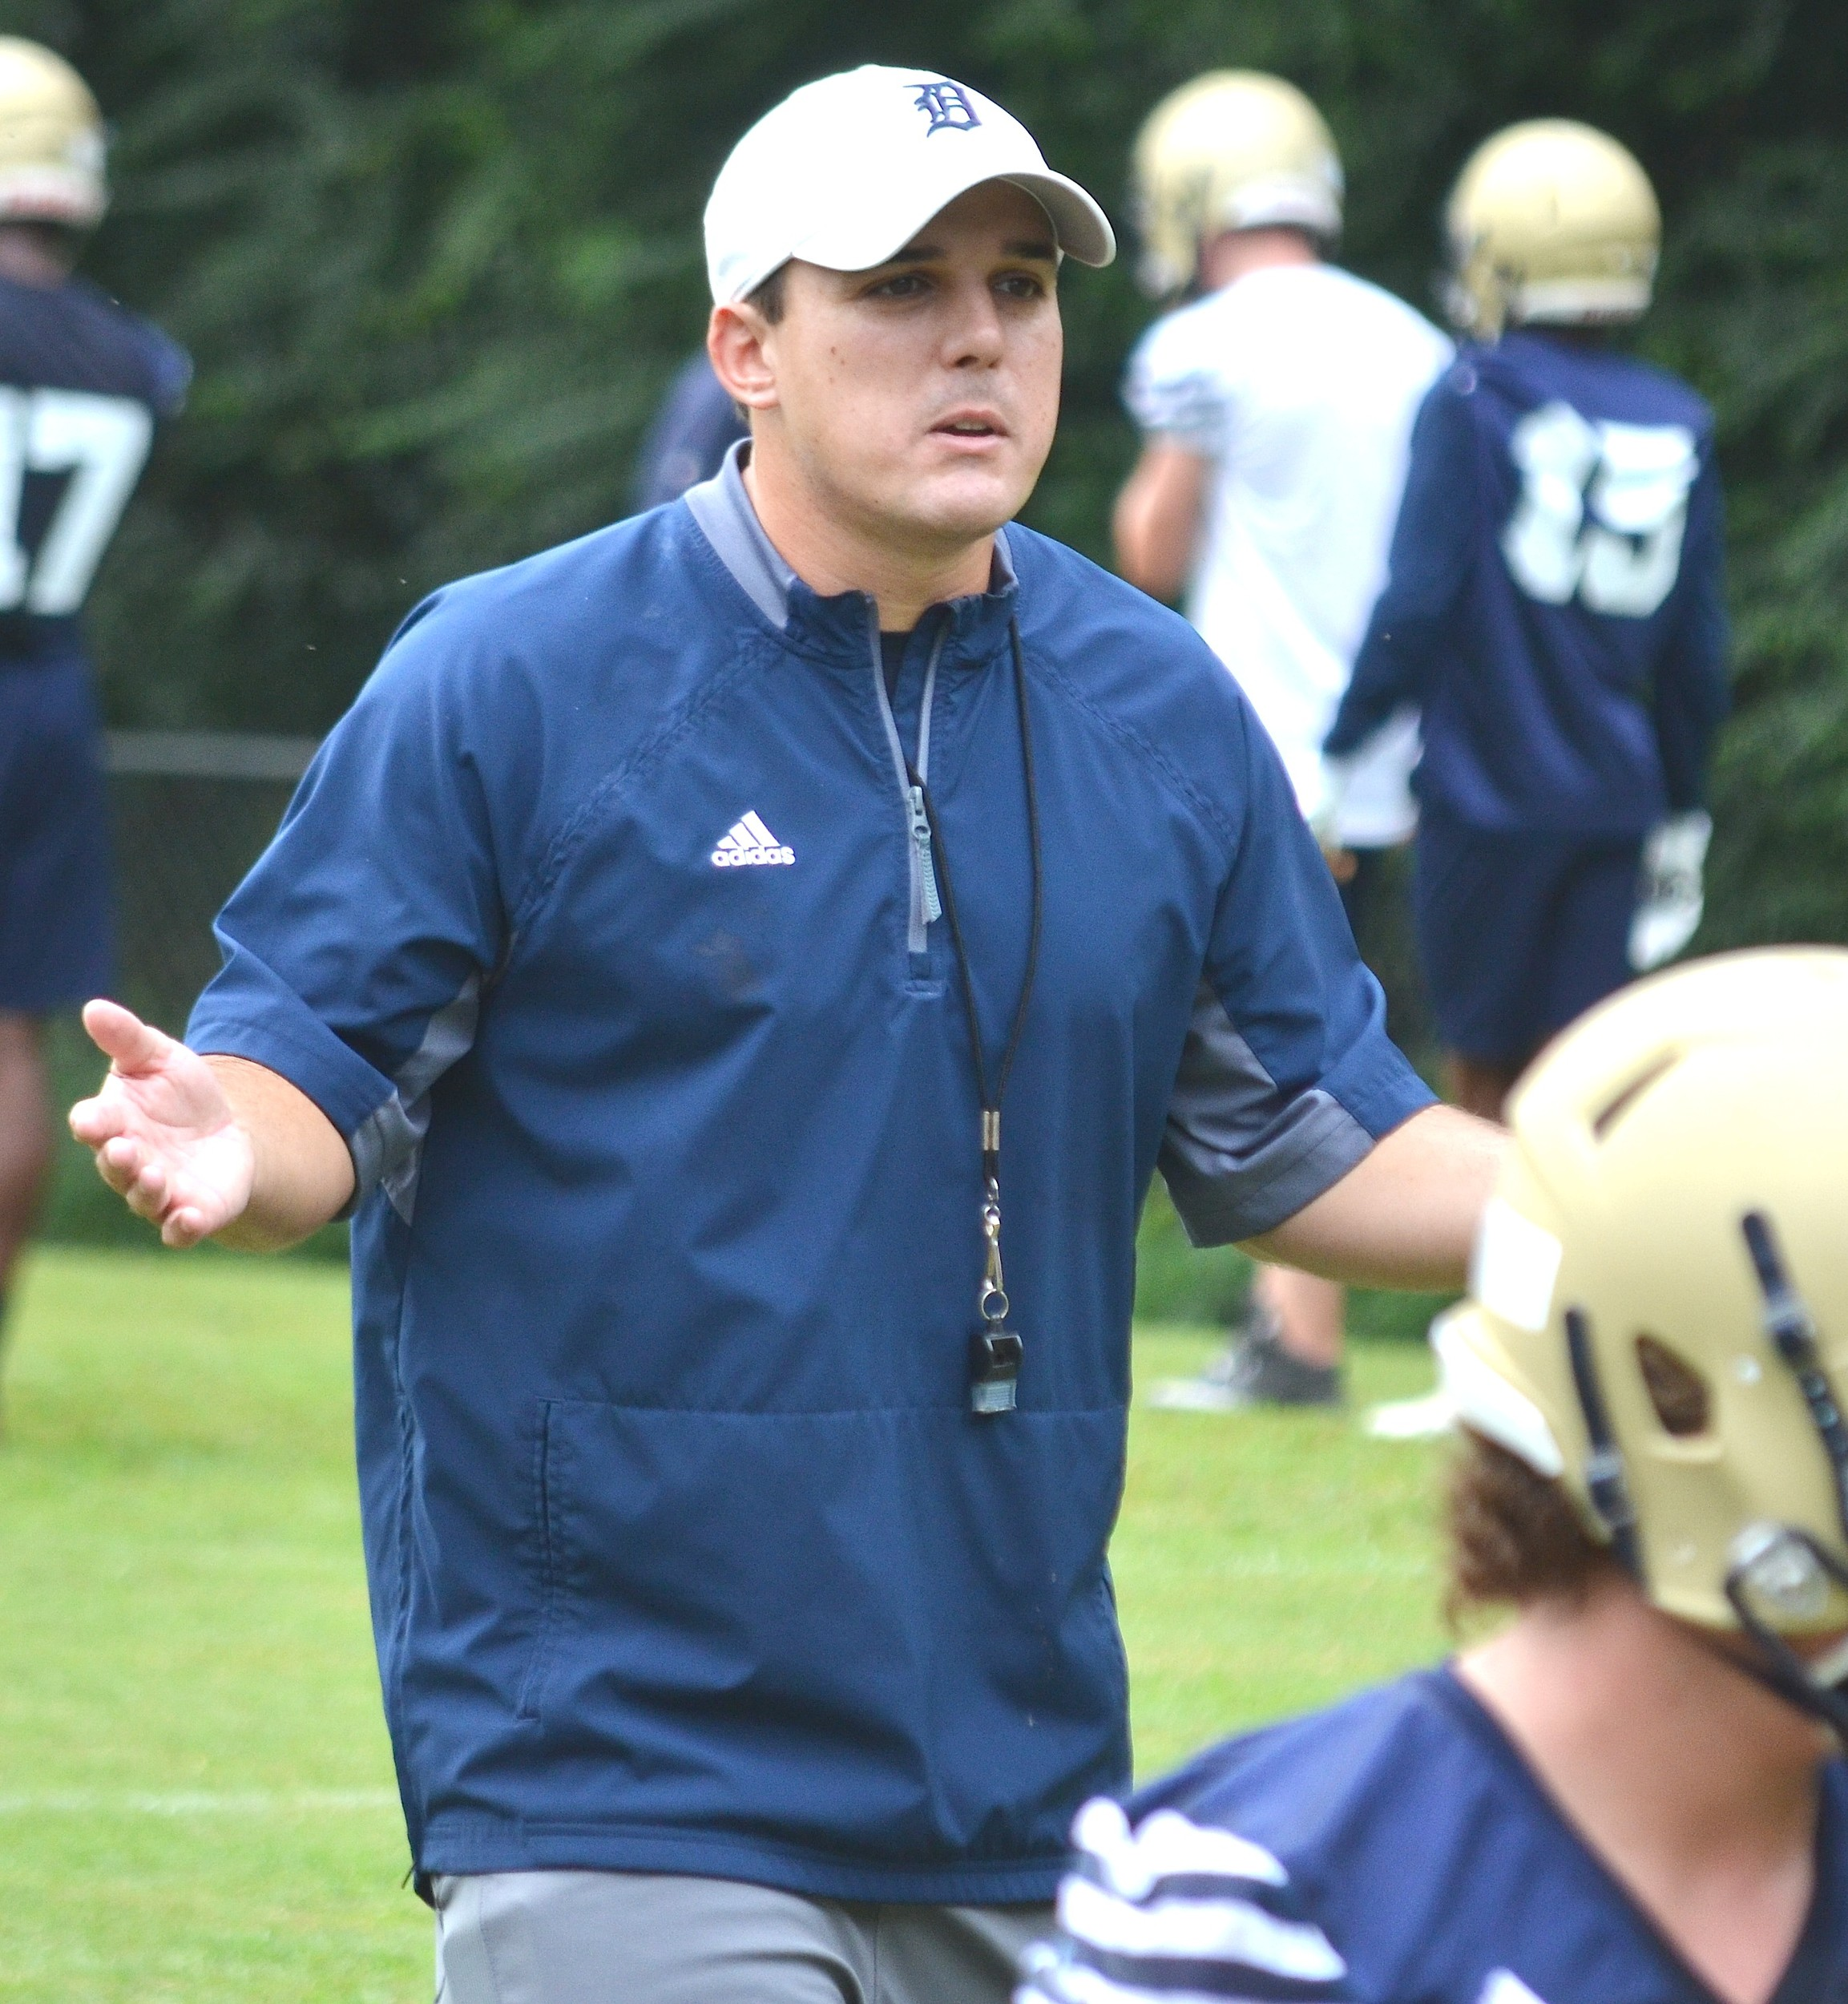 Bart Lockhart is the new head coach at Dora High School following two years at Sumiton Christian.